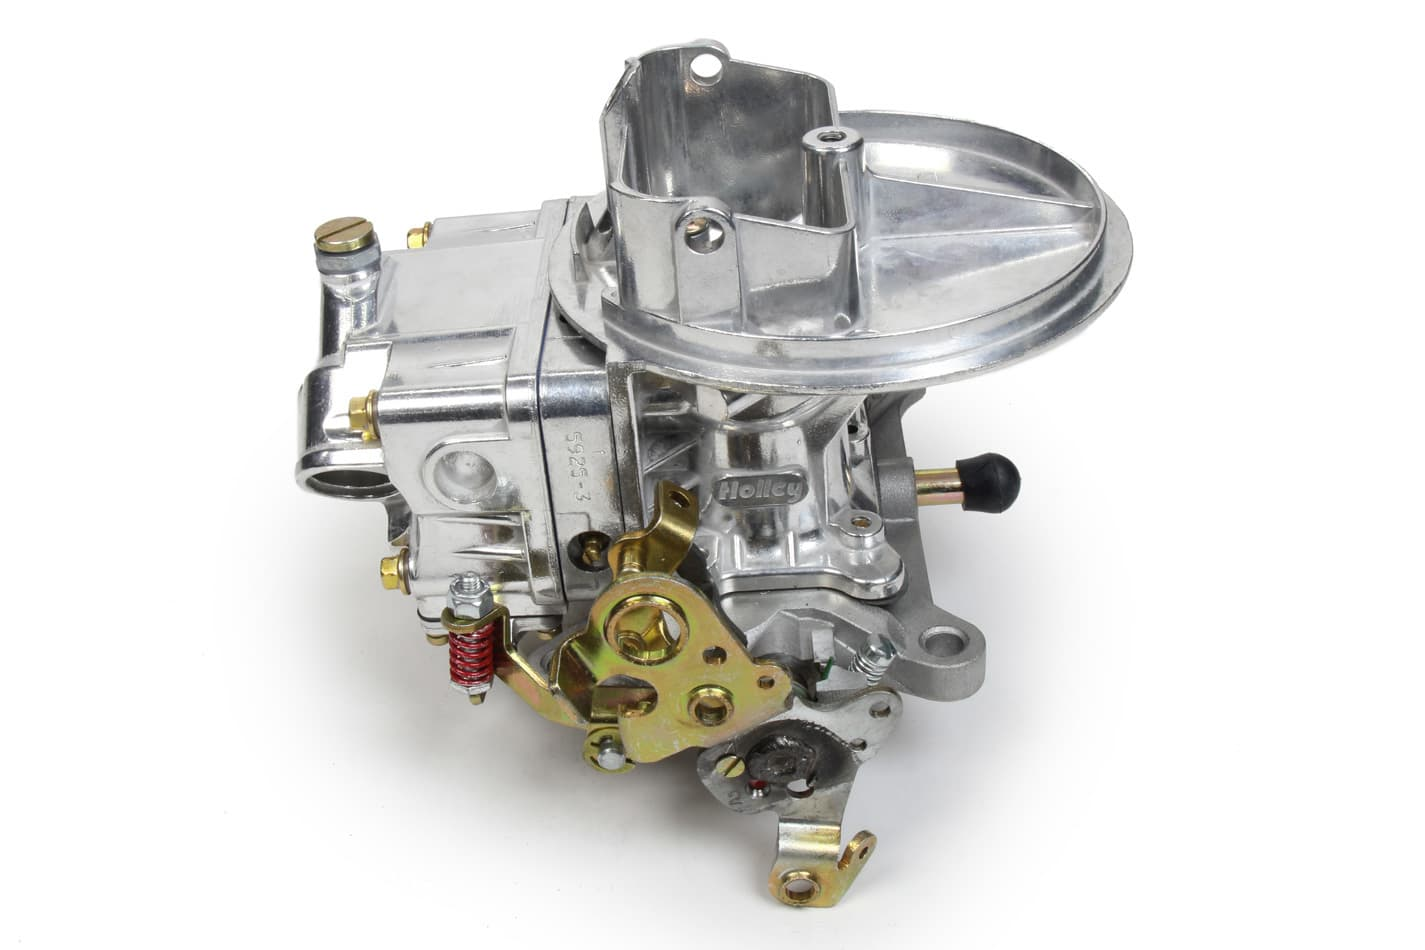 Willy's 500cfm Gas Carb with Holley or Billet blocks